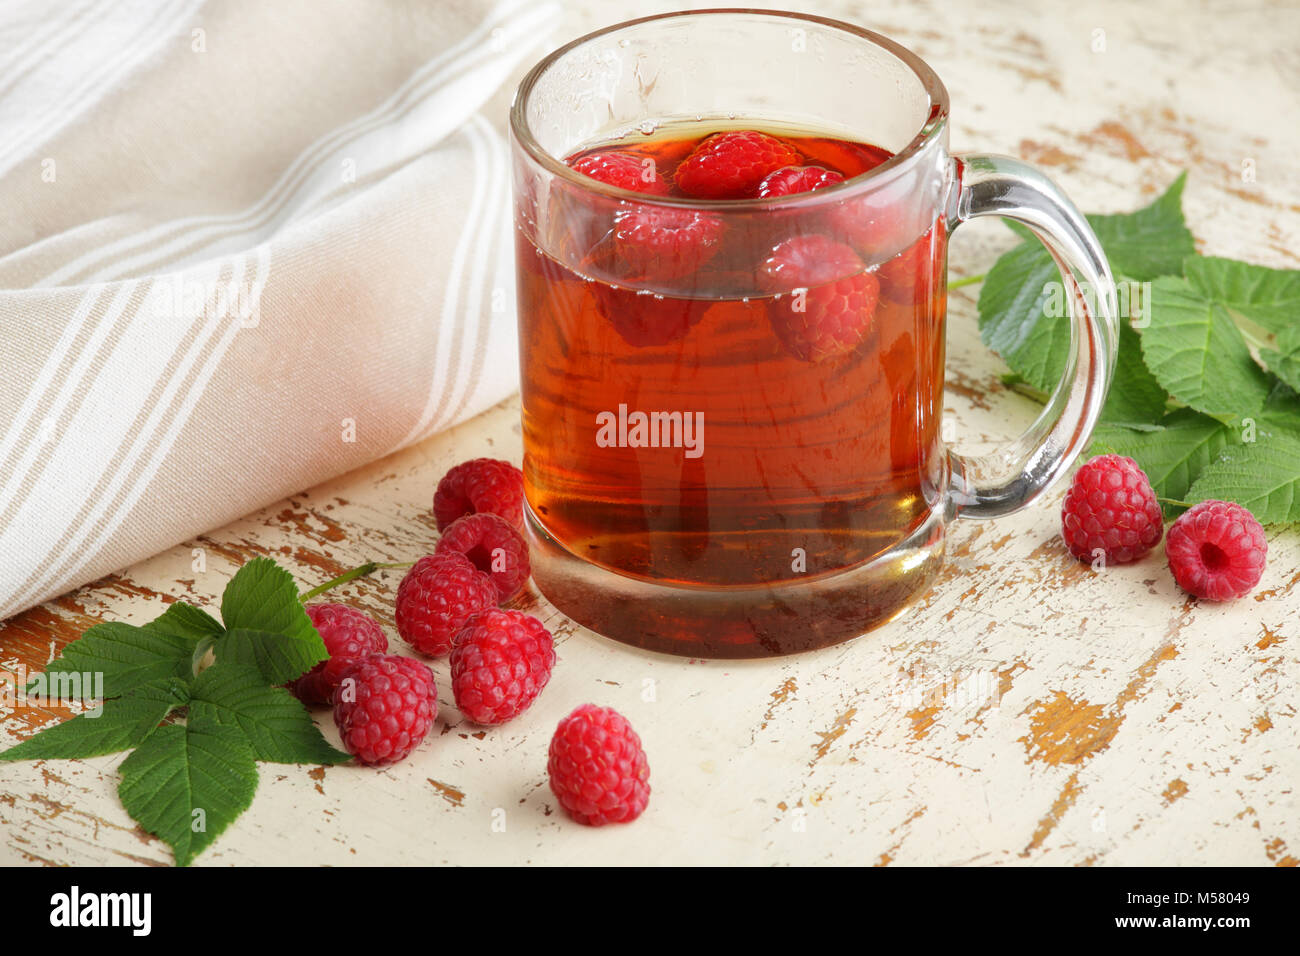 Raspberry tea in a glass cup and scattered berries - Stock Image